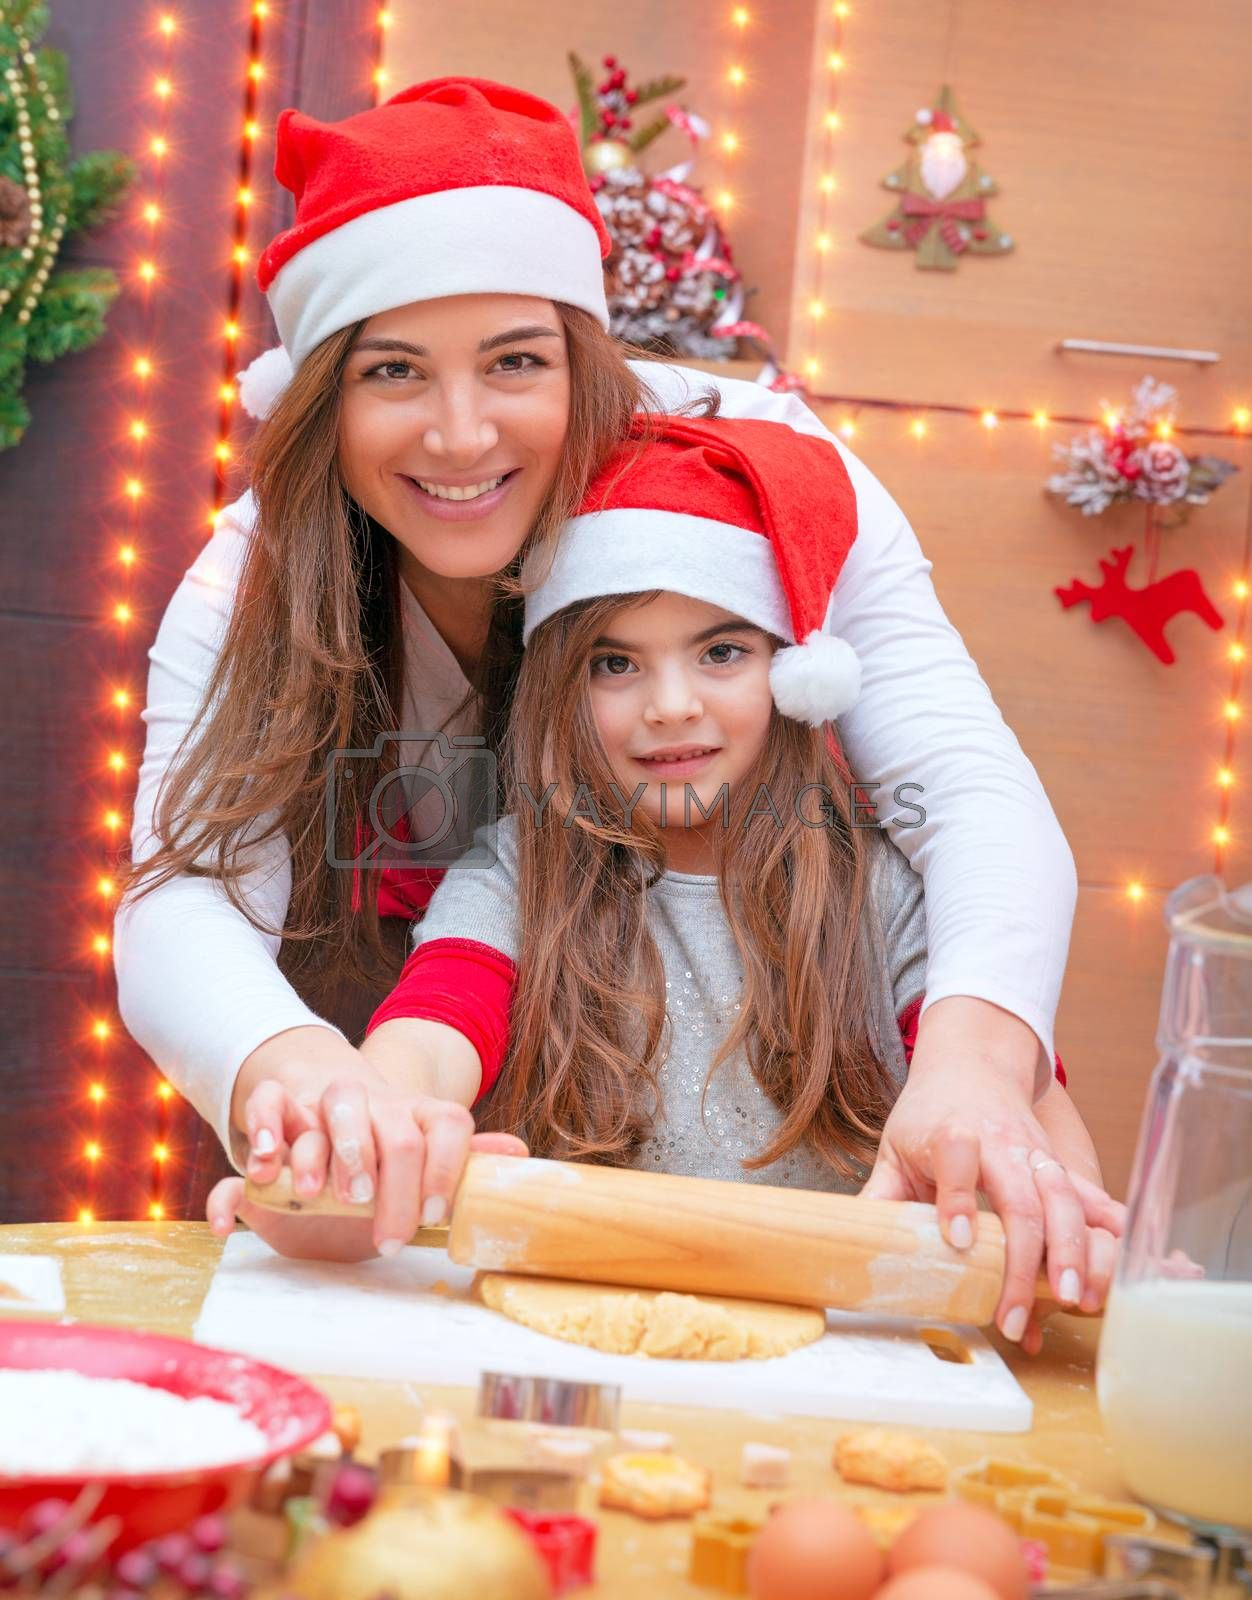 Happy family making Christmas cookies, mother and little daughter molding the dough at home, traditional preparation for Xmas holidays